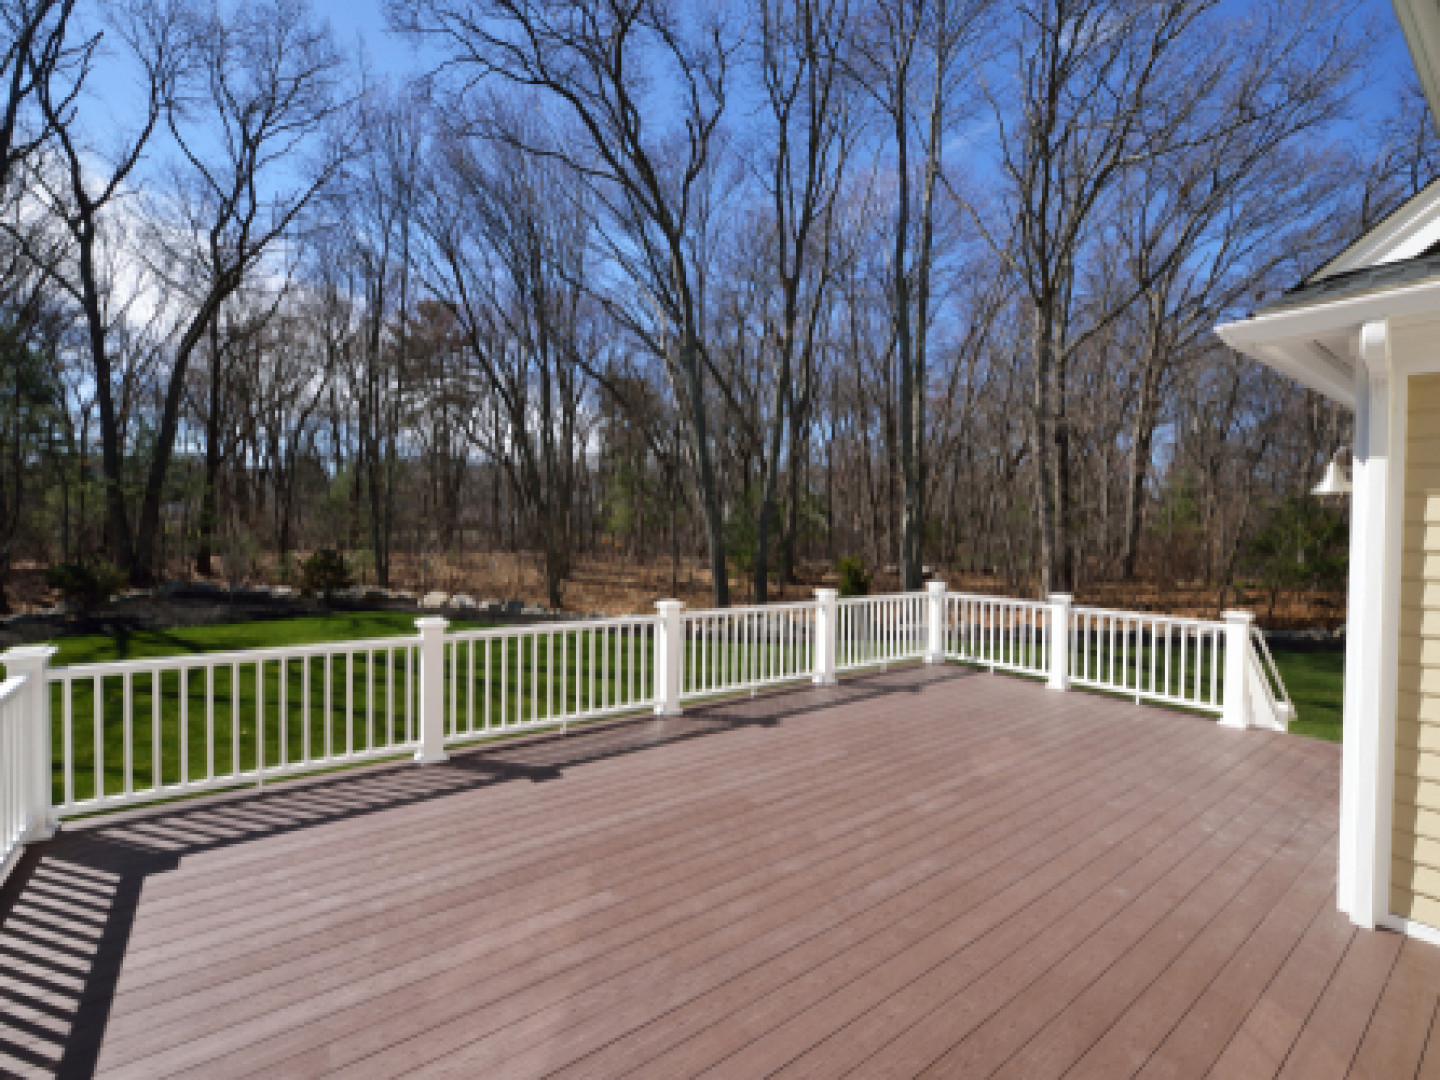 Decks and Patio Installations in Fayetteville, Greensboro & Surrounding Areas in NC